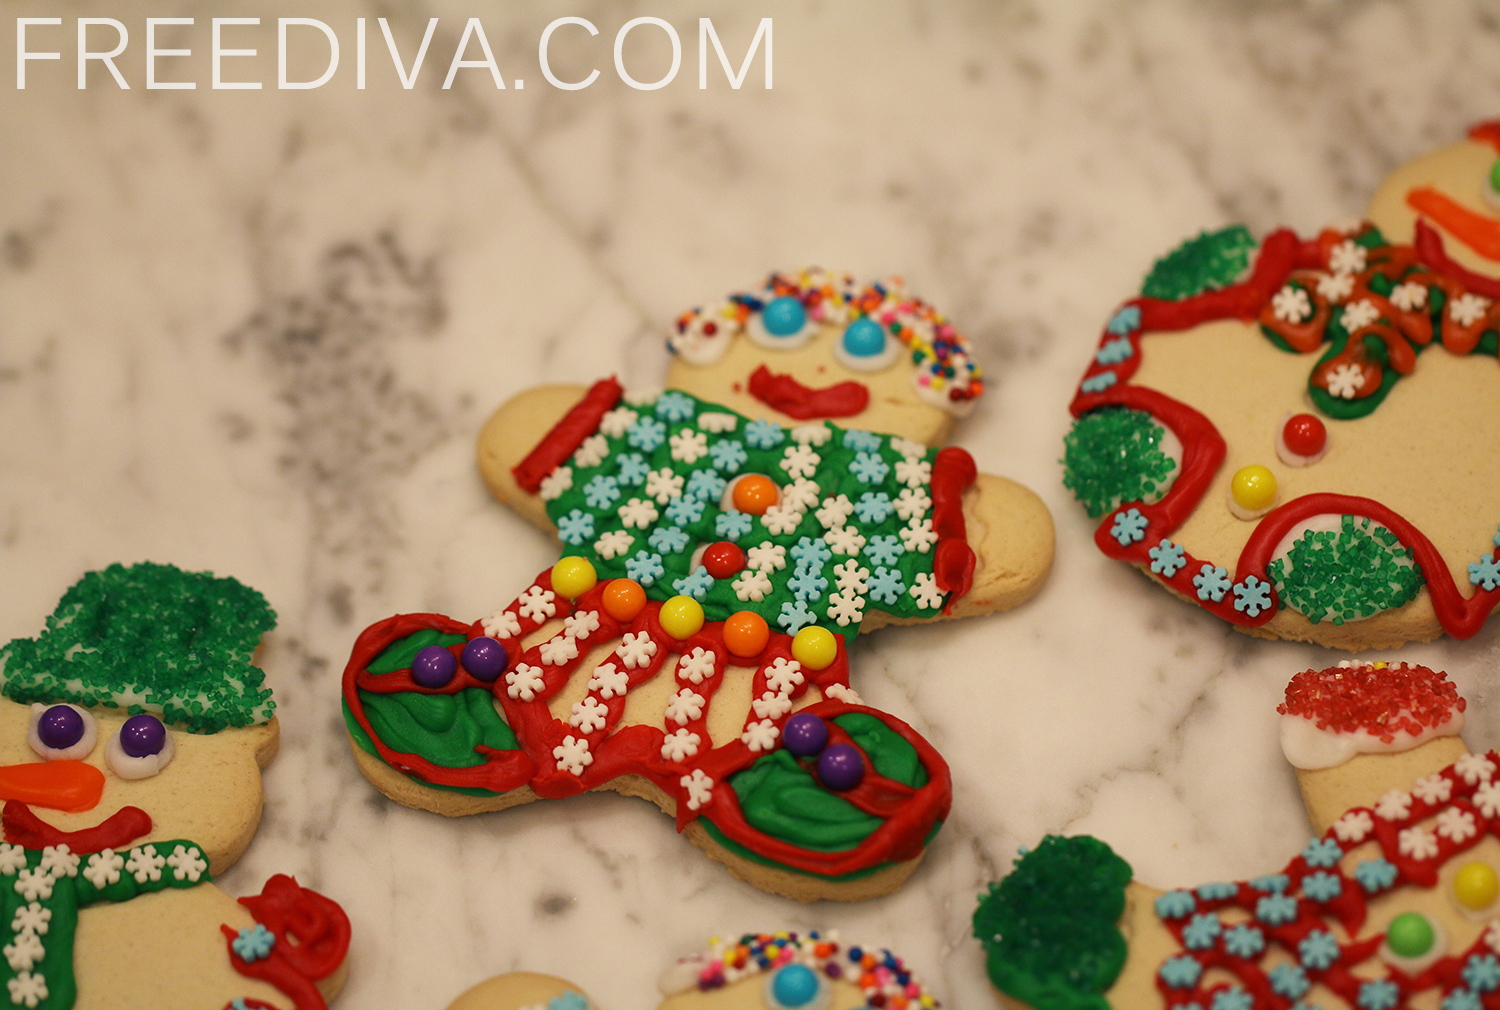 BJs Holiday Decorating Cookie Kit - Free Diva